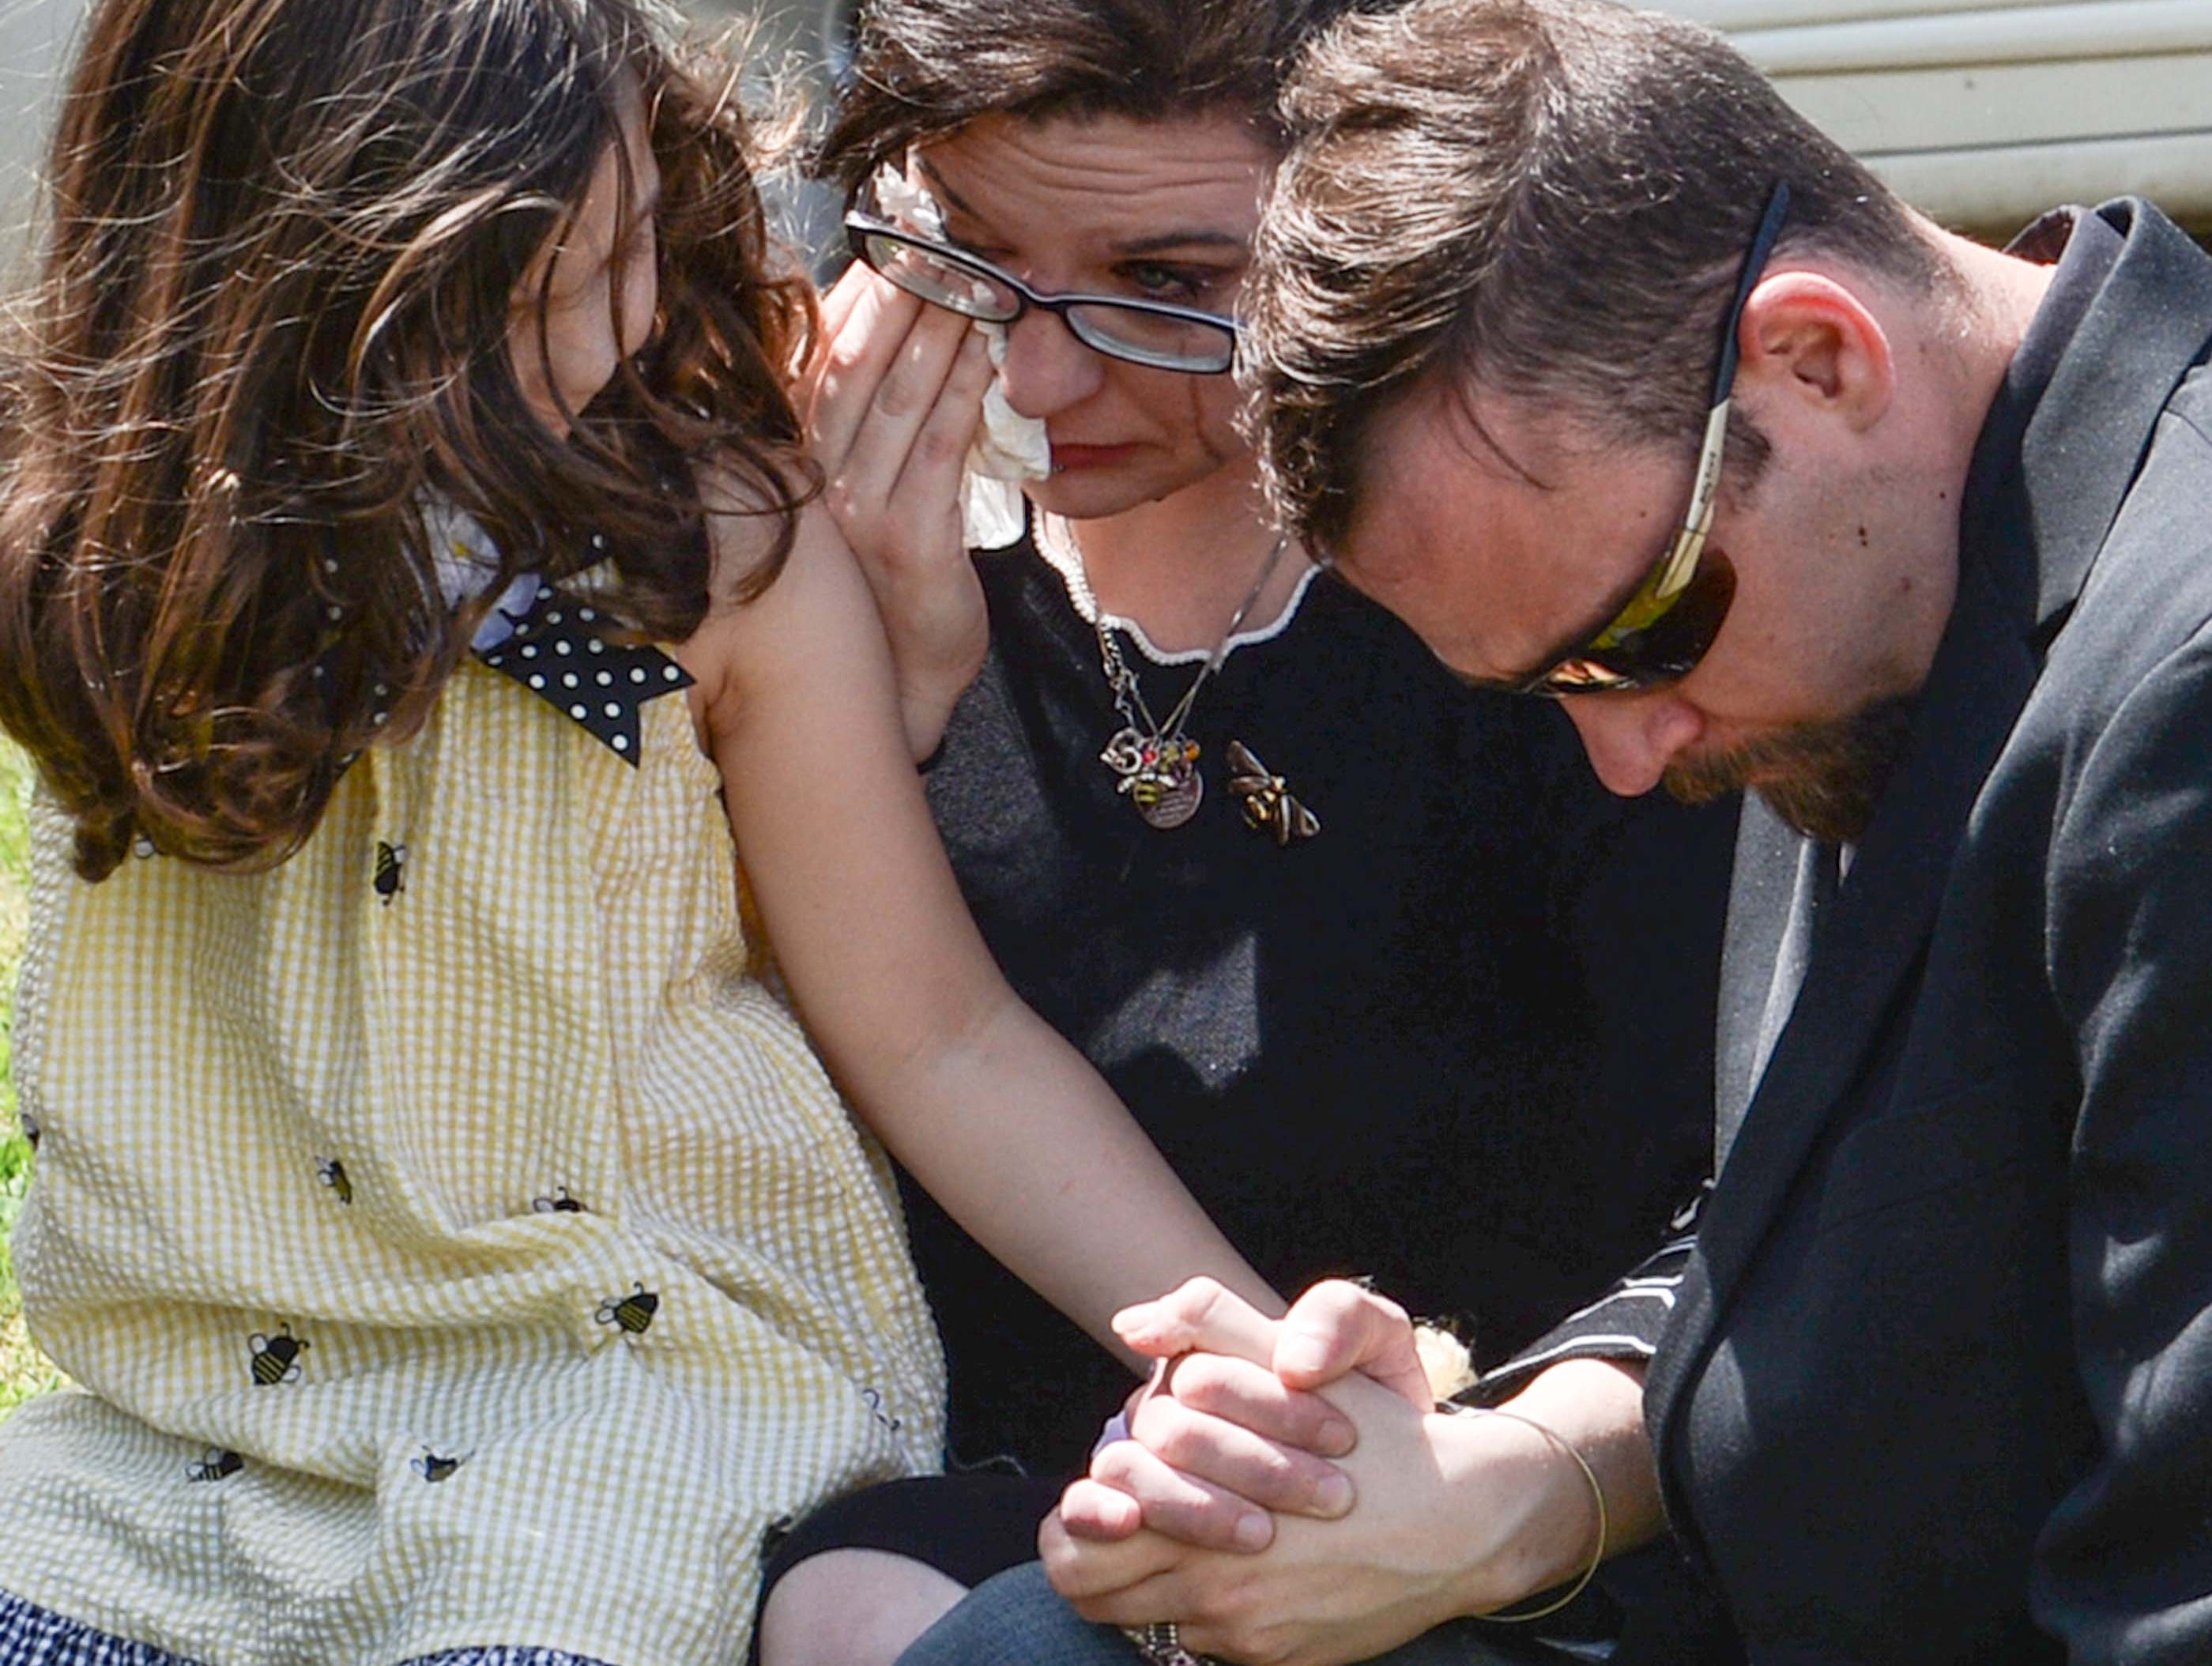 "Gracie Hess, left, hold the hand of her mother Ravyn Hammond, middle, and Cody Hess, right, as Rev. Kenny Owens of Westminster First Baptist Church offers an opening prayer, during an office dedication of the Foothills Alliance Oconee County Gwynnie Bee House in Walhalla Friday. Foothills Alliance, who with partners provides education, advocacy, and treatment services to prevent sexual assault trauma and child abuse services in Anderson and Oconee Counties, branched out from their Anderson office with an office in Walhalla last August. Hammond lost her daughter Gwynne Ann-Marie Hess, ""Gwynnie Bee, in 2017 from child abuse, and the office was renamed after her Friday in the presence of family, law enforcement, Sen. Thomas Alexander, Oconee County Sheriff Michael Crenshaw, and Tenth Circuit Solicitor David Wagner."